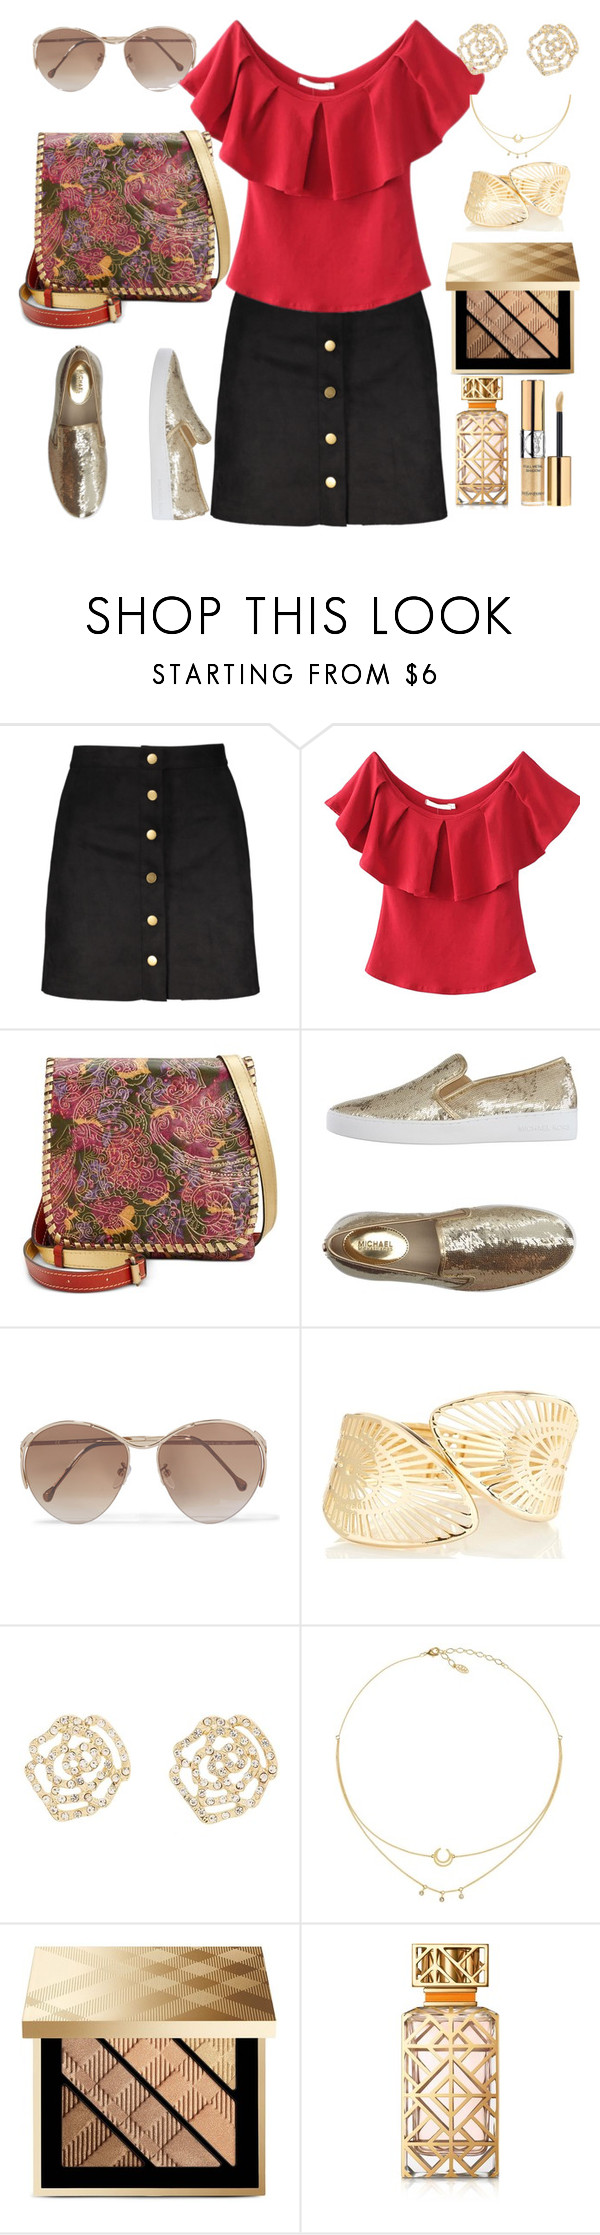 """""""gold rest"""" by francymayoli ❤ liked on Polyvore featuring Patricia Nash, MICHAEL Michael Kors, Loewe, Charlotte Russe, Burberry, Tory Burch and Yves Saint Laurent"""